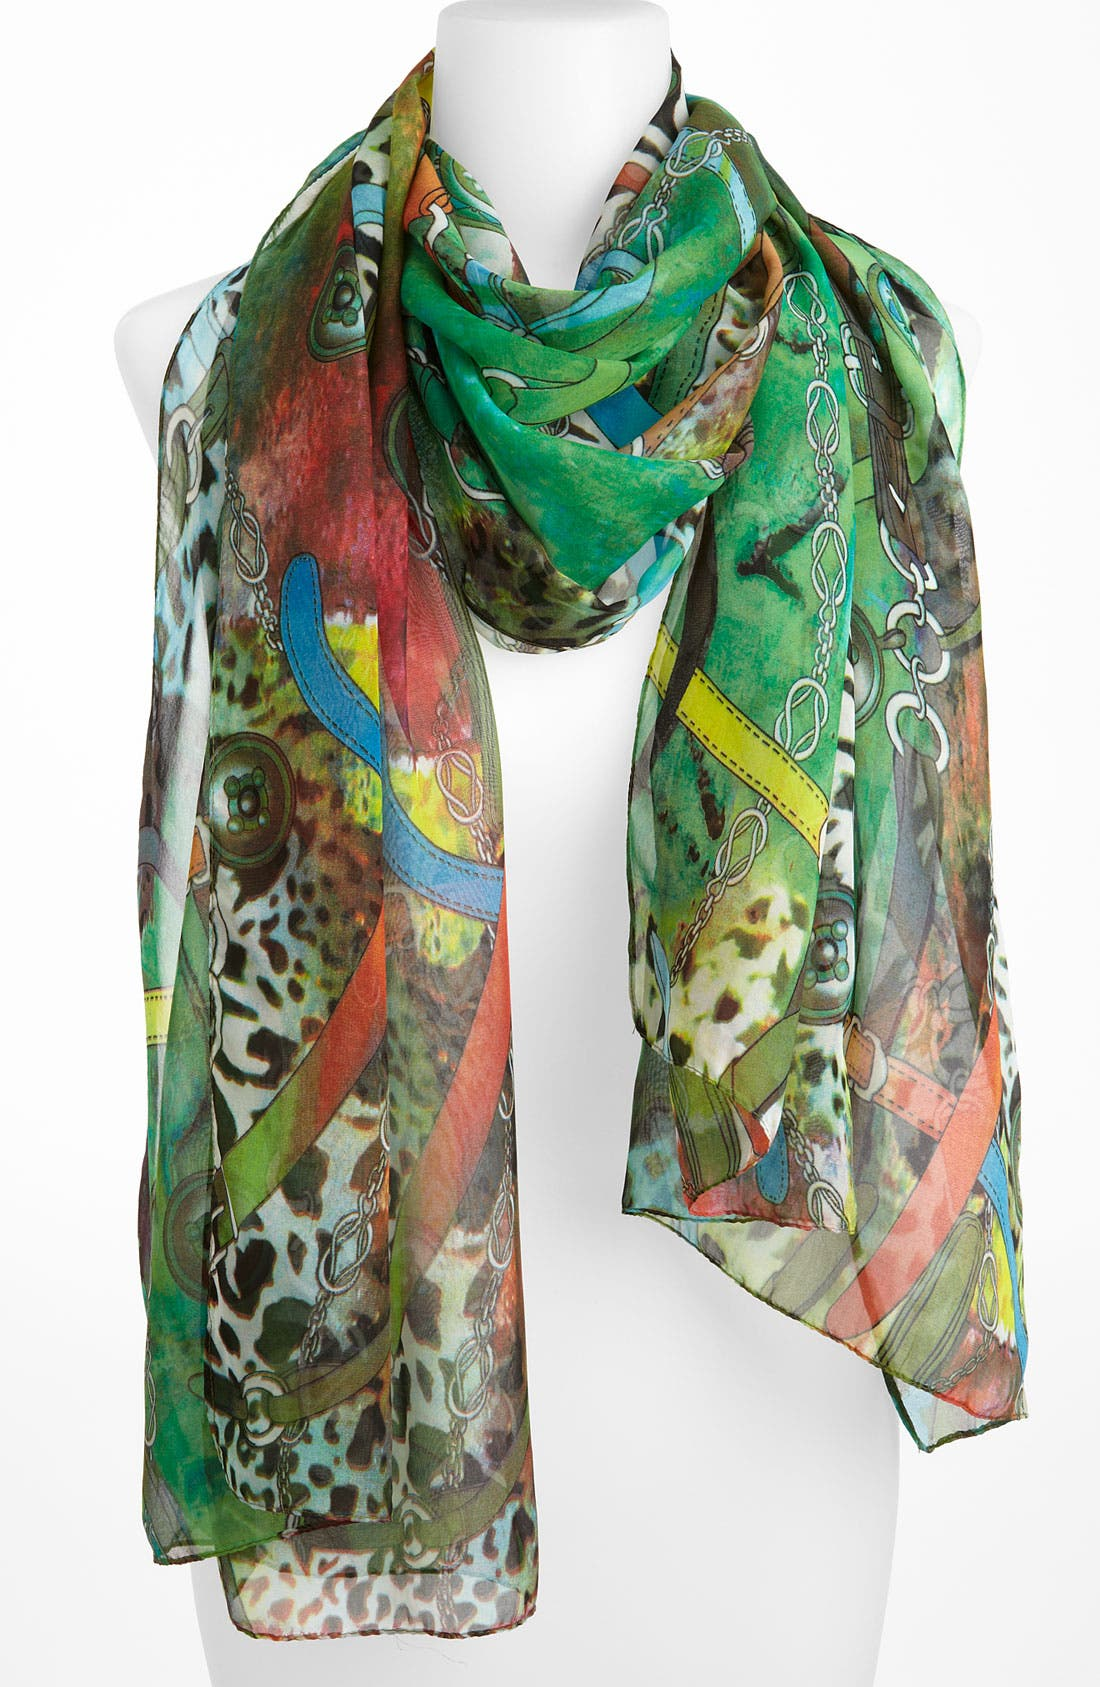 Alternate Image 1 Selected - Eyeful 'Animal & Chain' Oblong Scarf